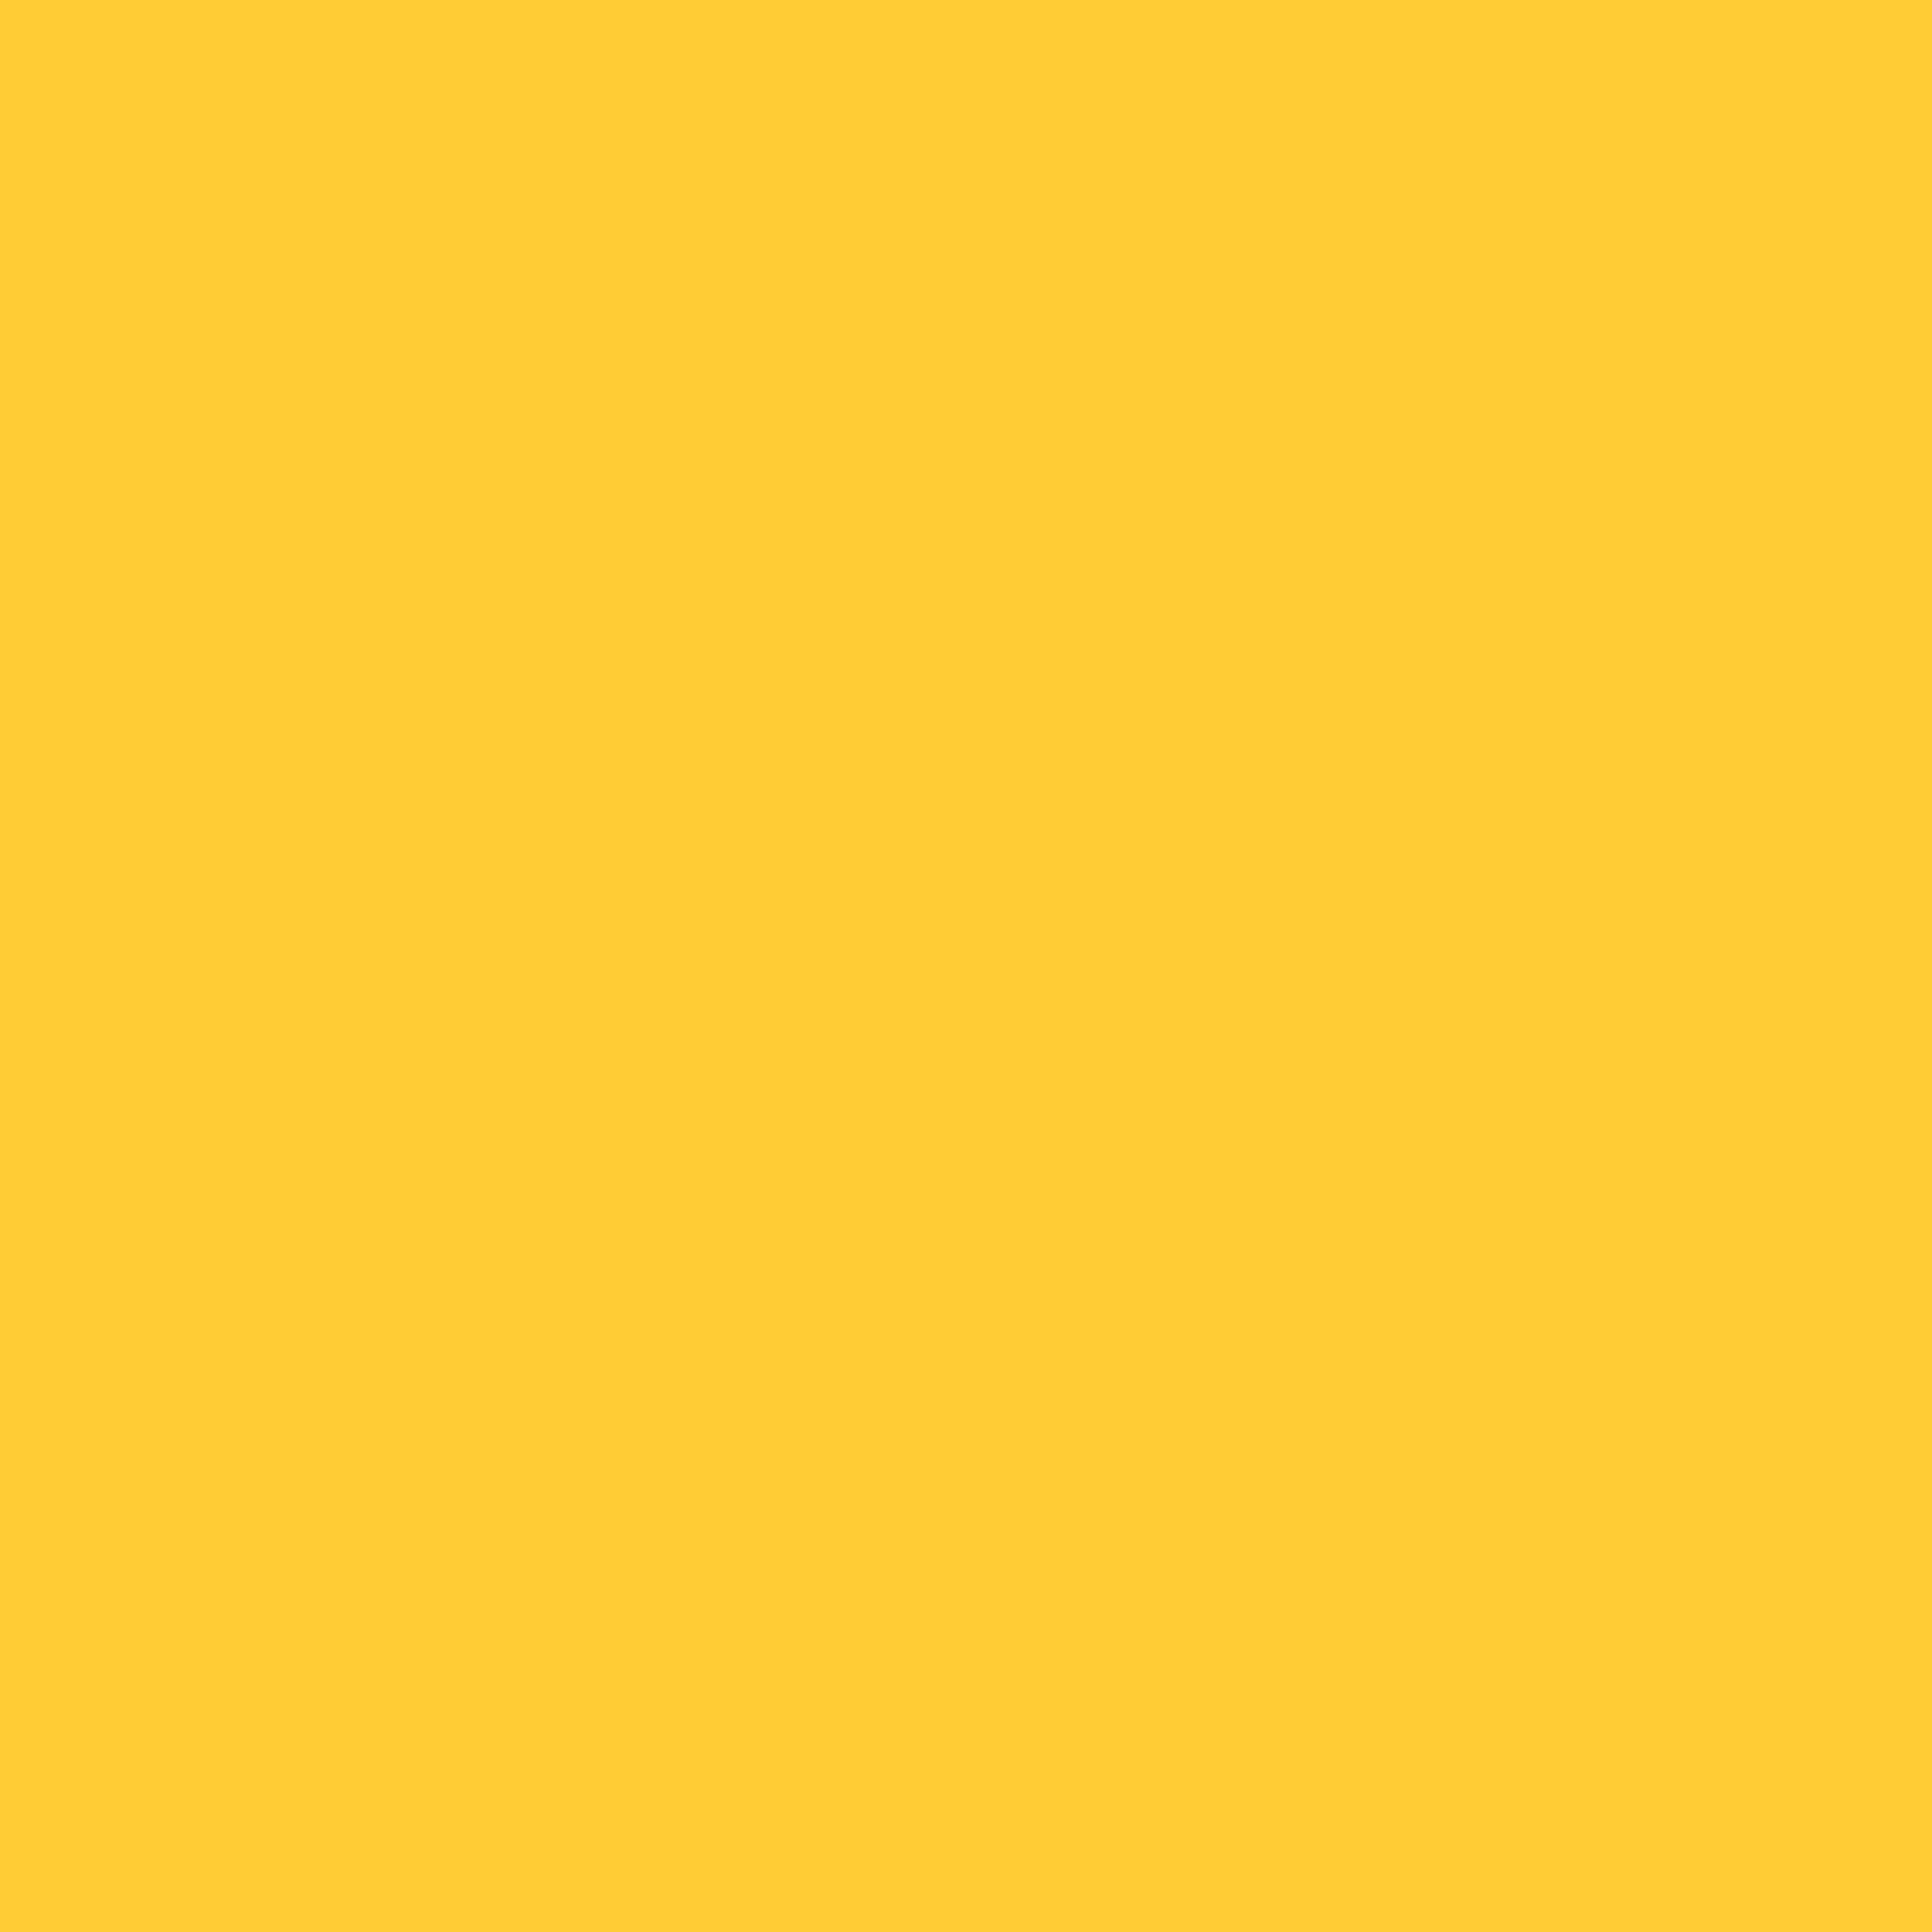 2732x2732 Sunglow Solid Color Background